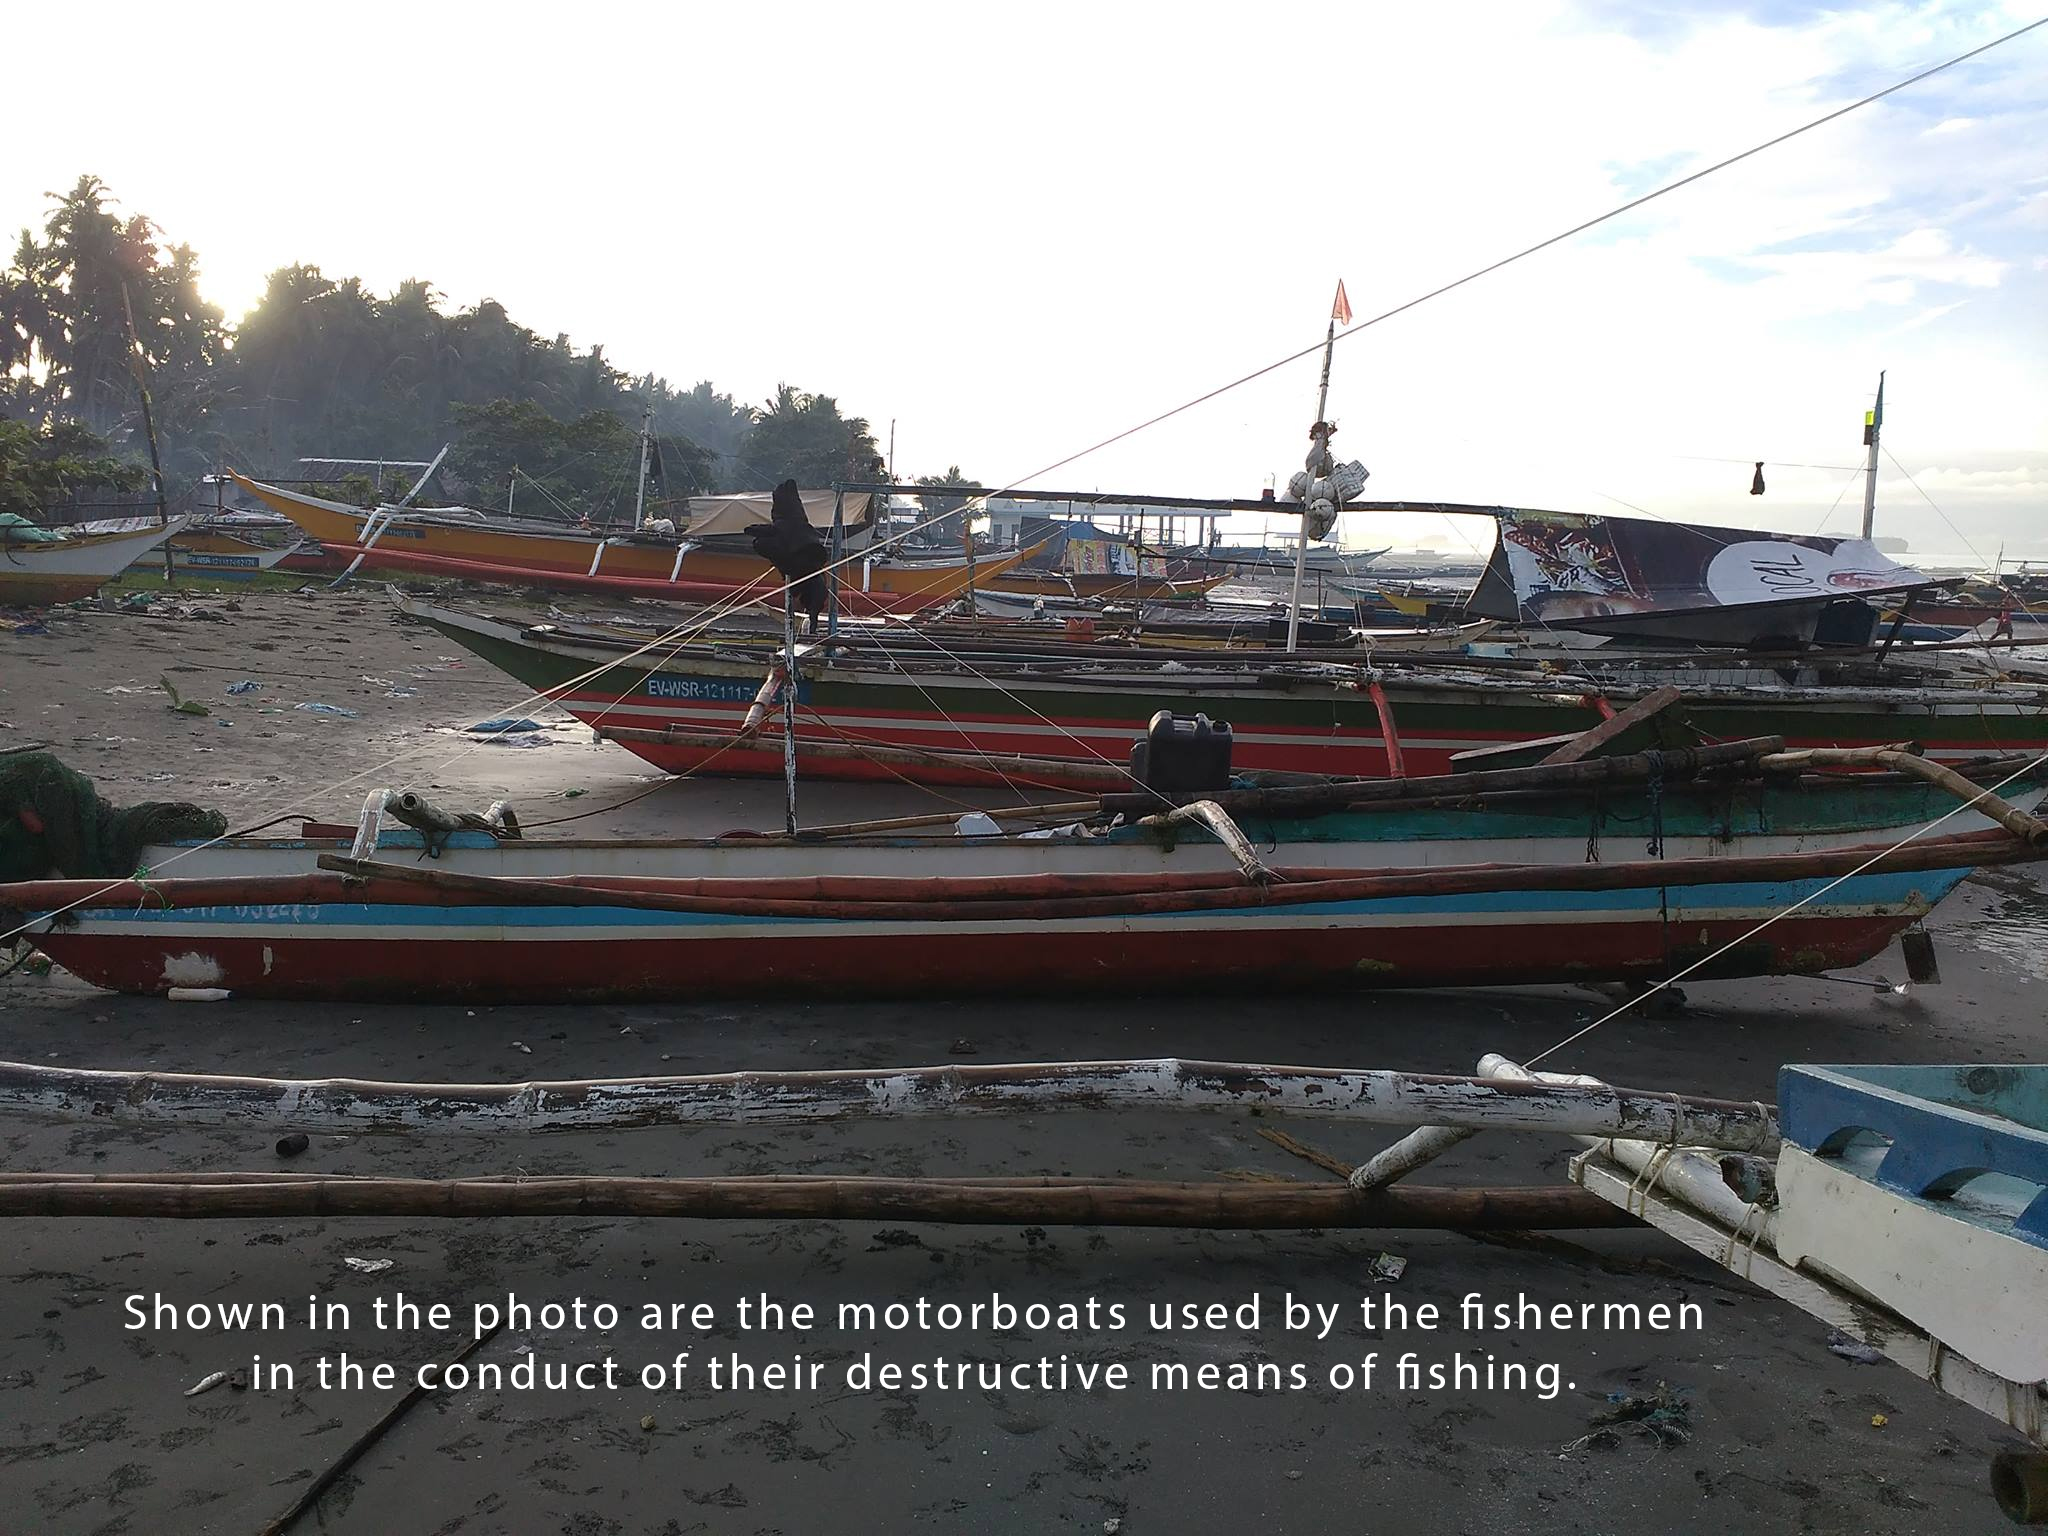 11 FISHERMEN IN 7 TRAWL BOATS CAUGHT REDHANDEDLY CONDUCTING ILLEGAL ...